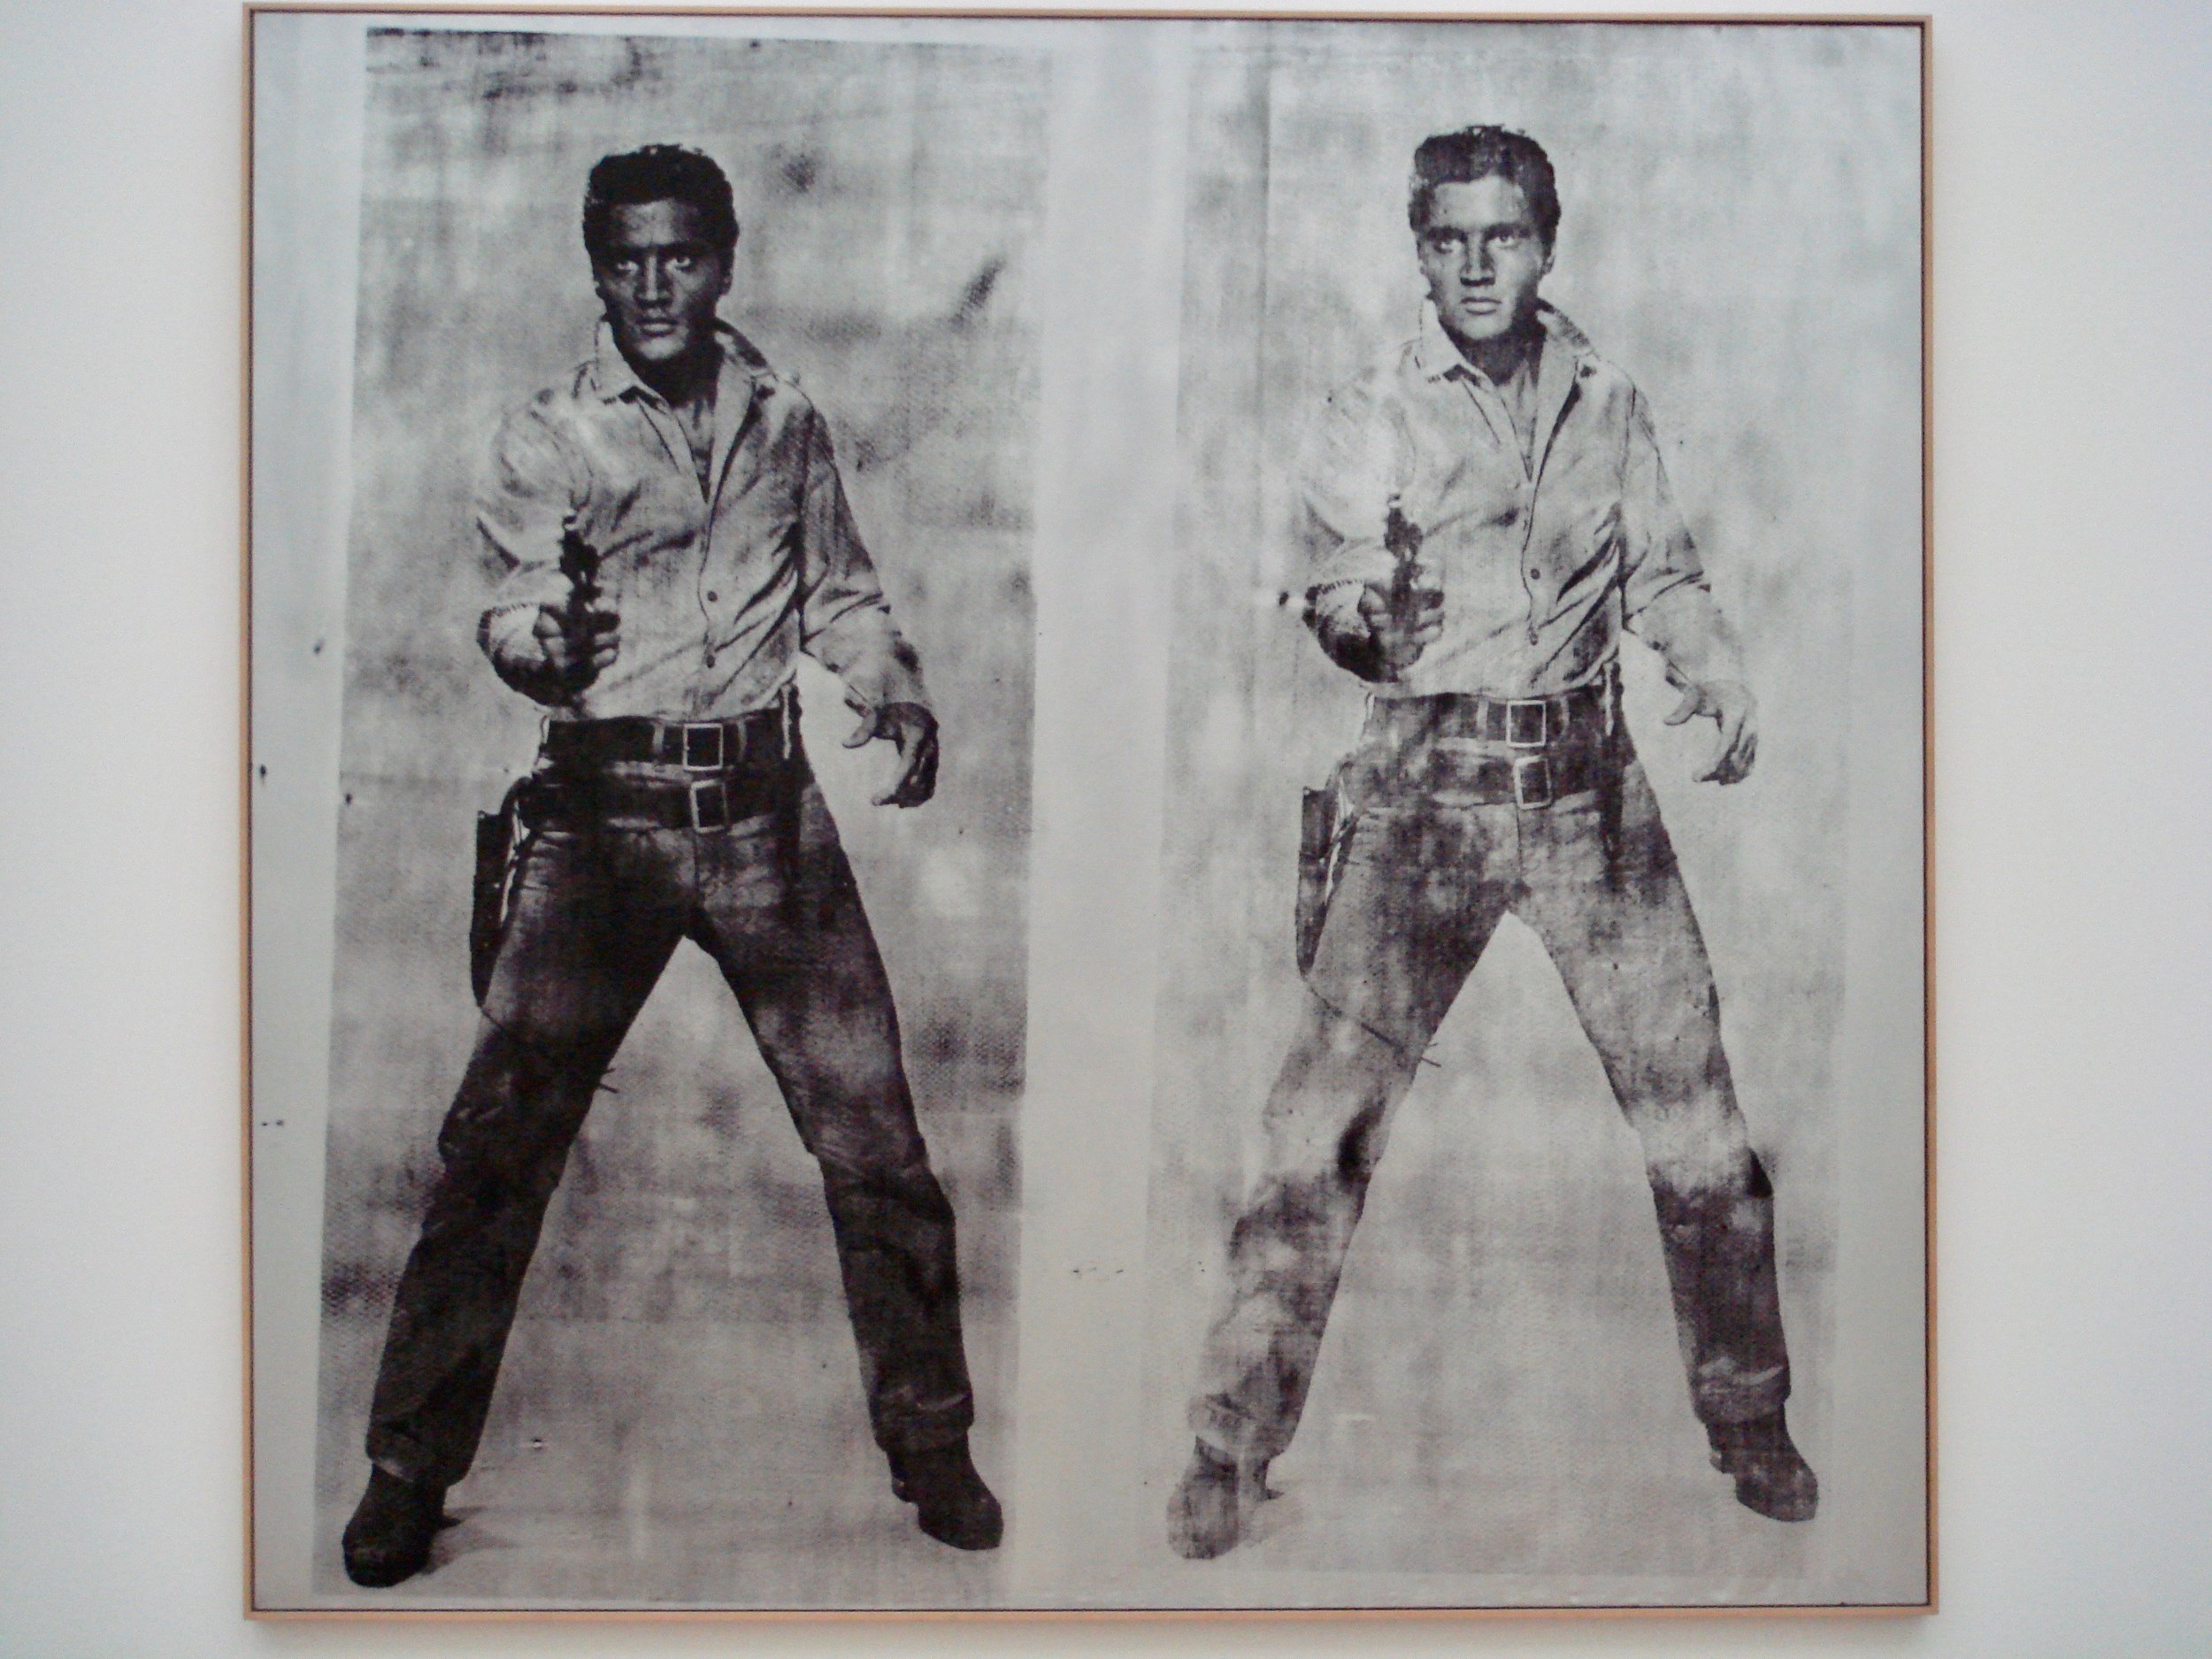 Elvis at Berlin's Hamburger Bahnhof